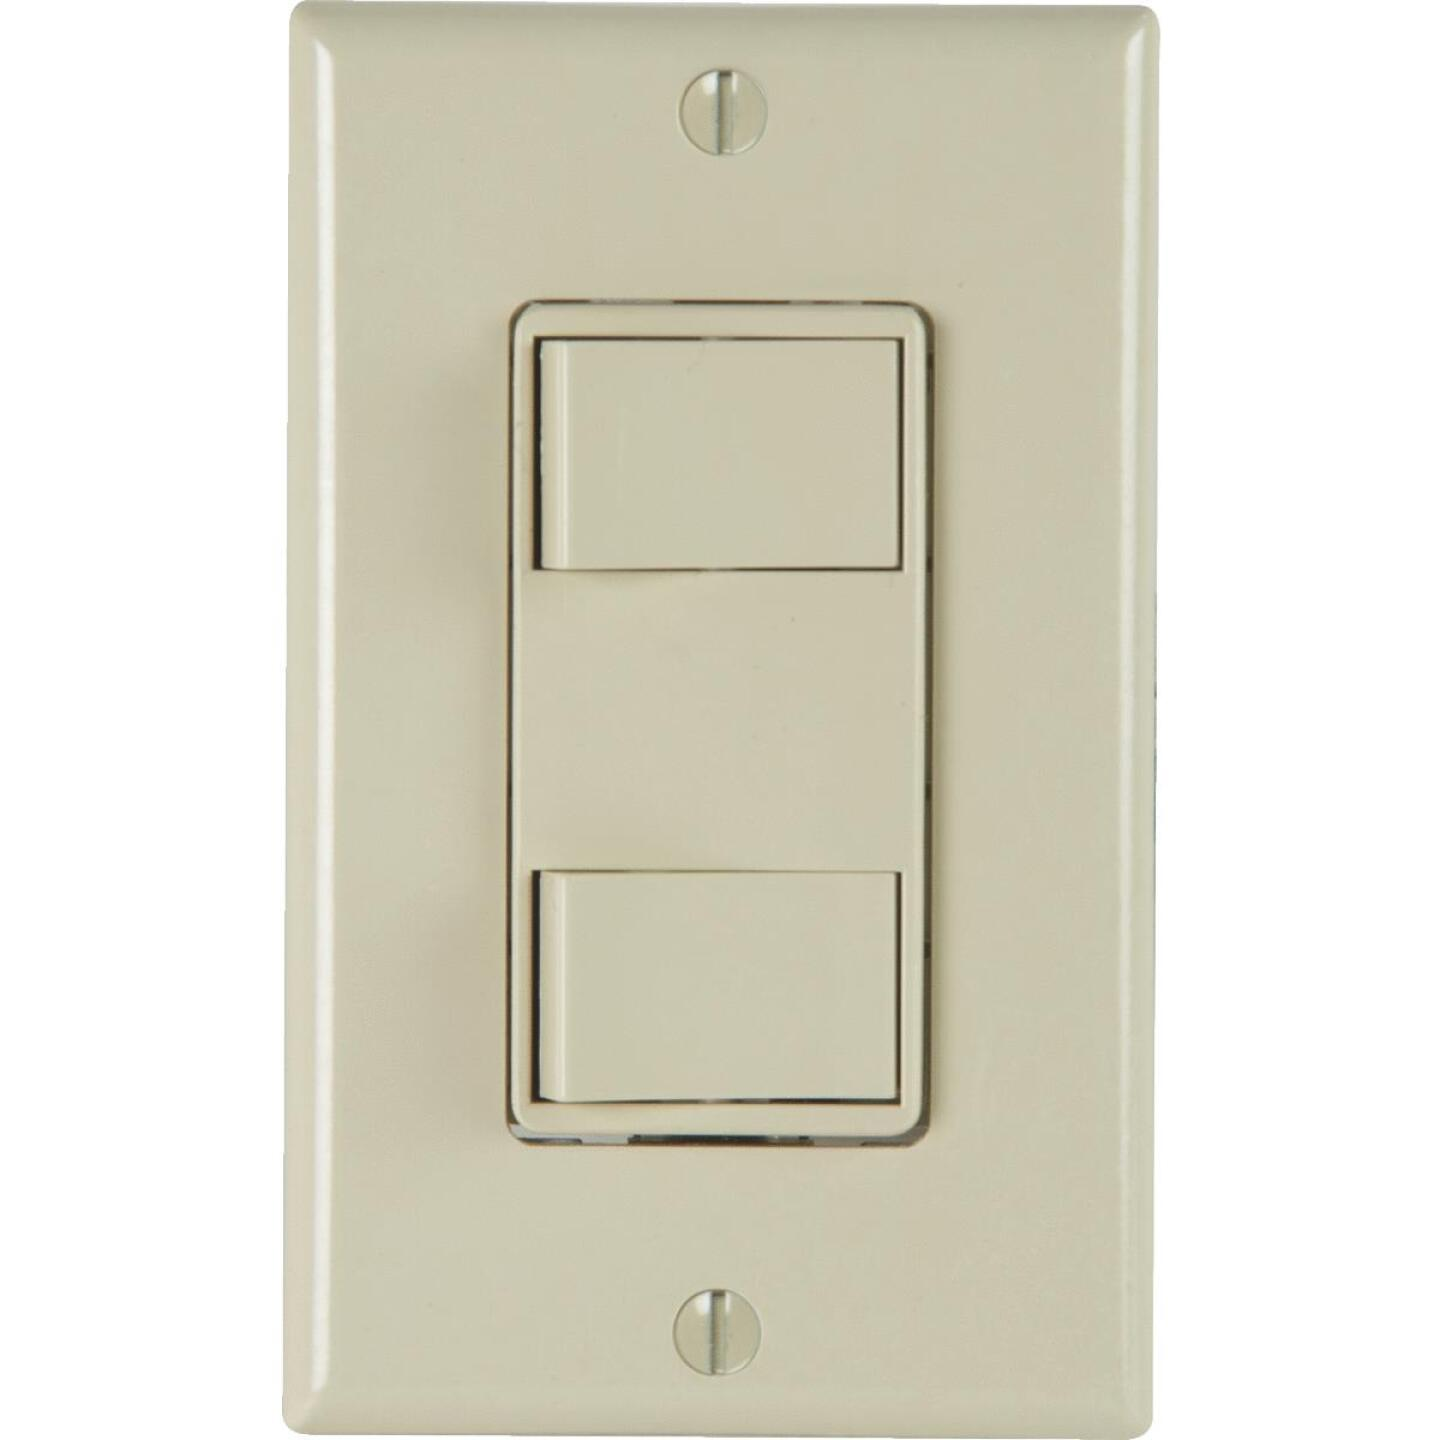 Broan 2-Function 20A/15A 120V Ivory Rocker Switch Image 1